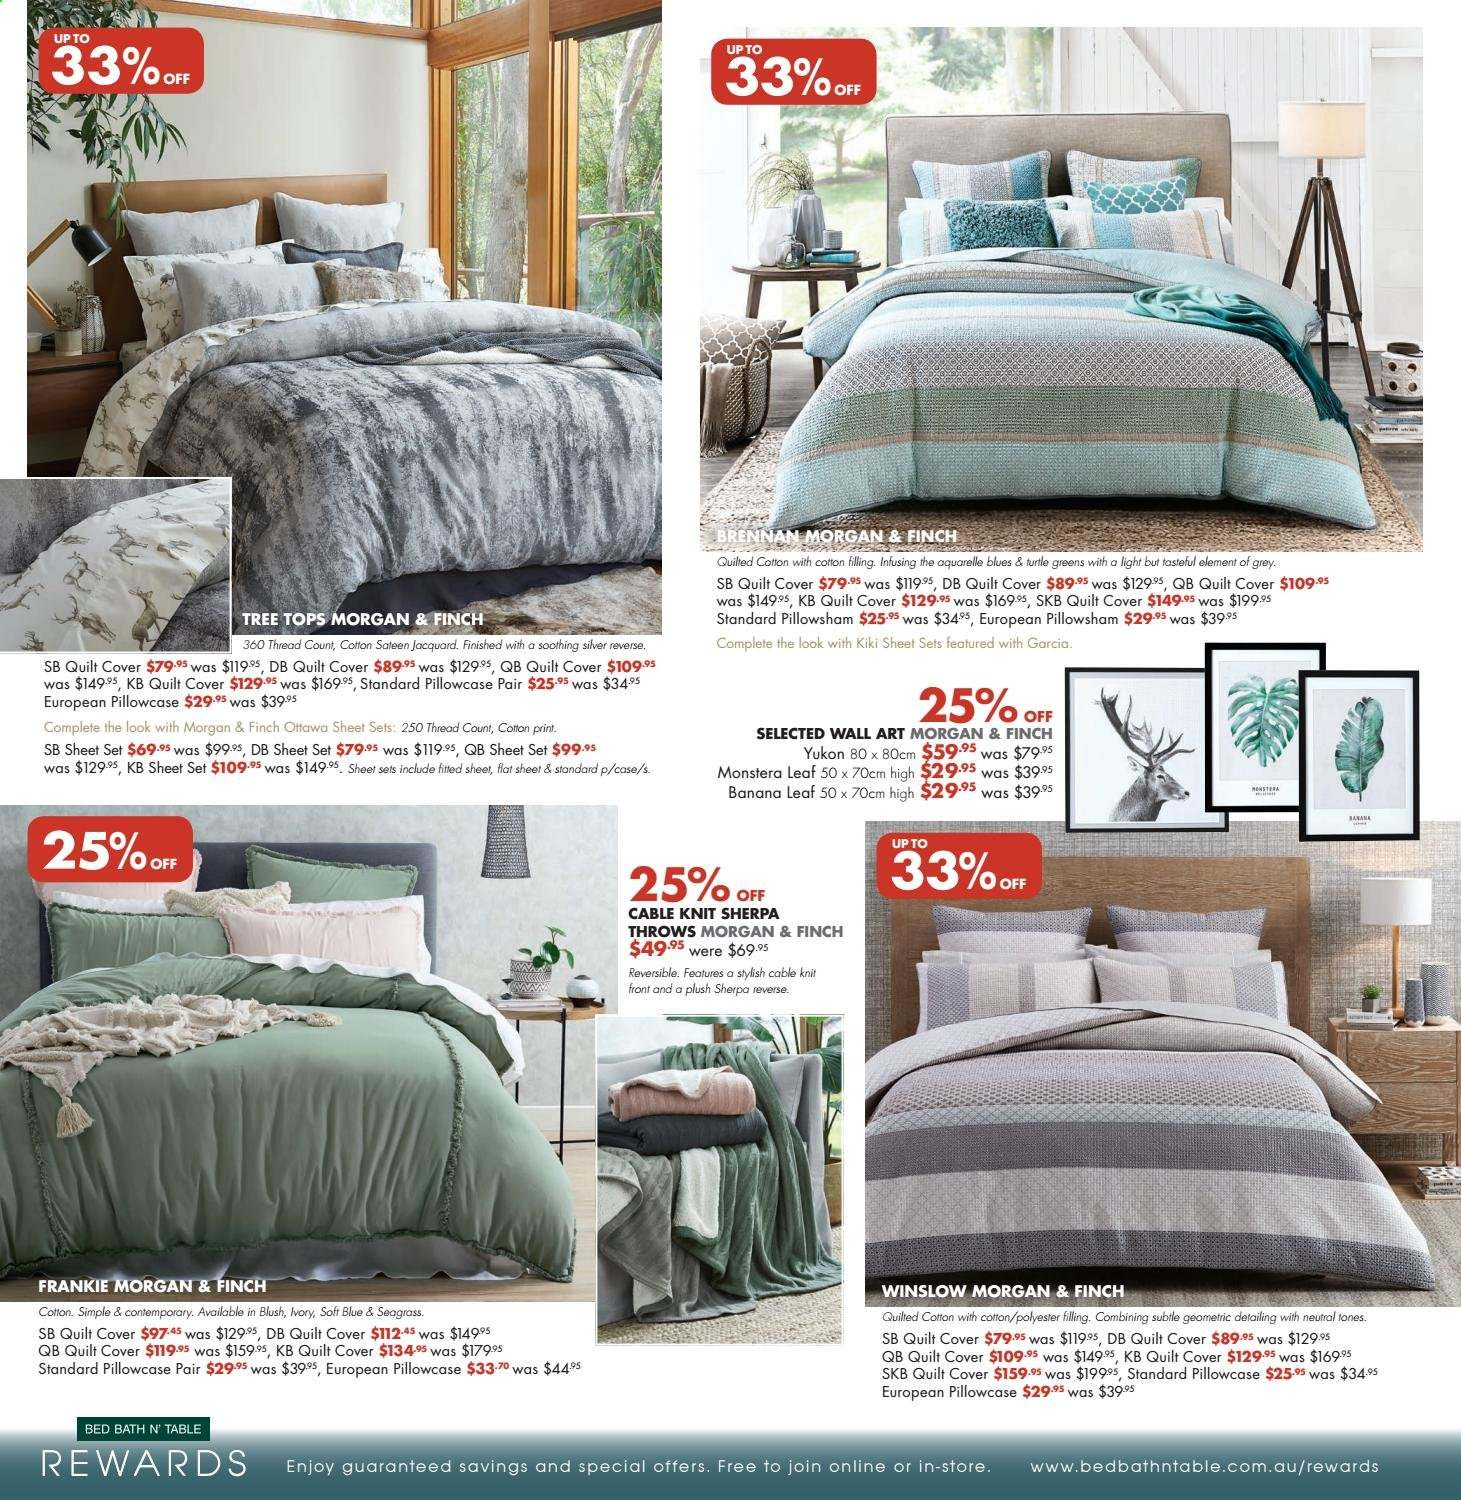 Superb Bed Bath N Table Catalogue And Weekly Specials 23 5 2019 Home Interior And Landscaping Ponolsignezvosmurscom